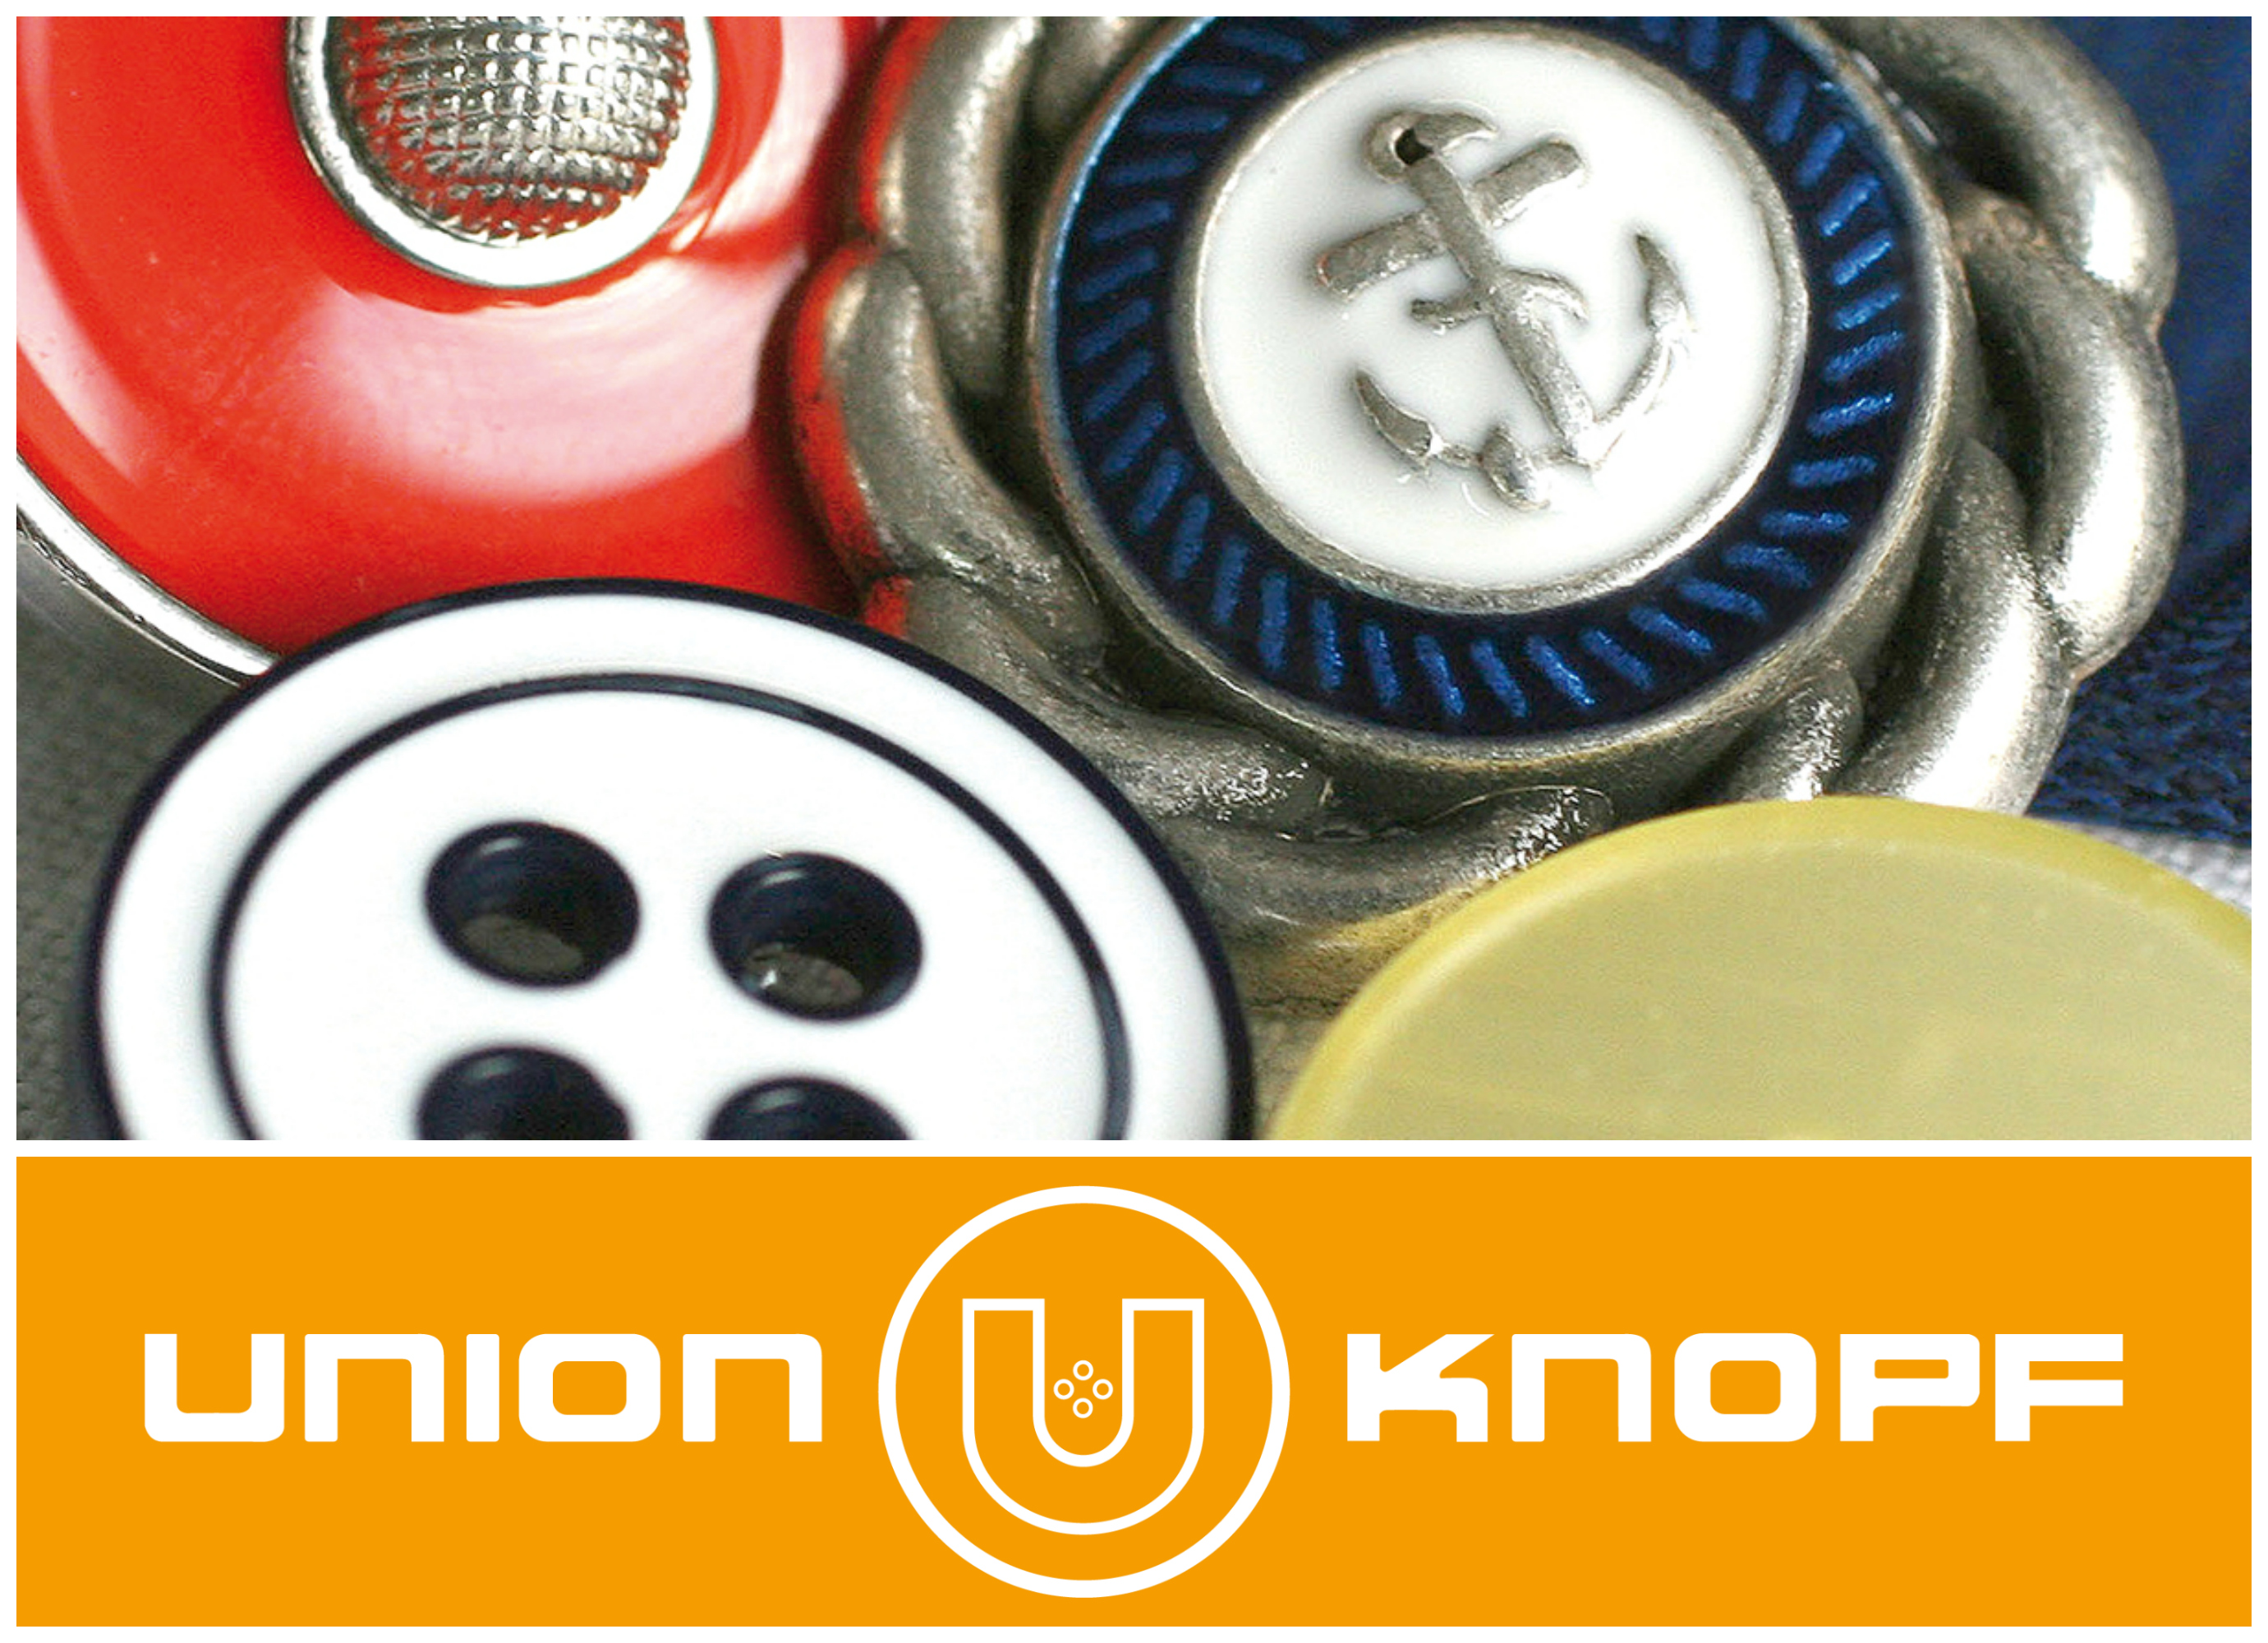 unionknopf_collage